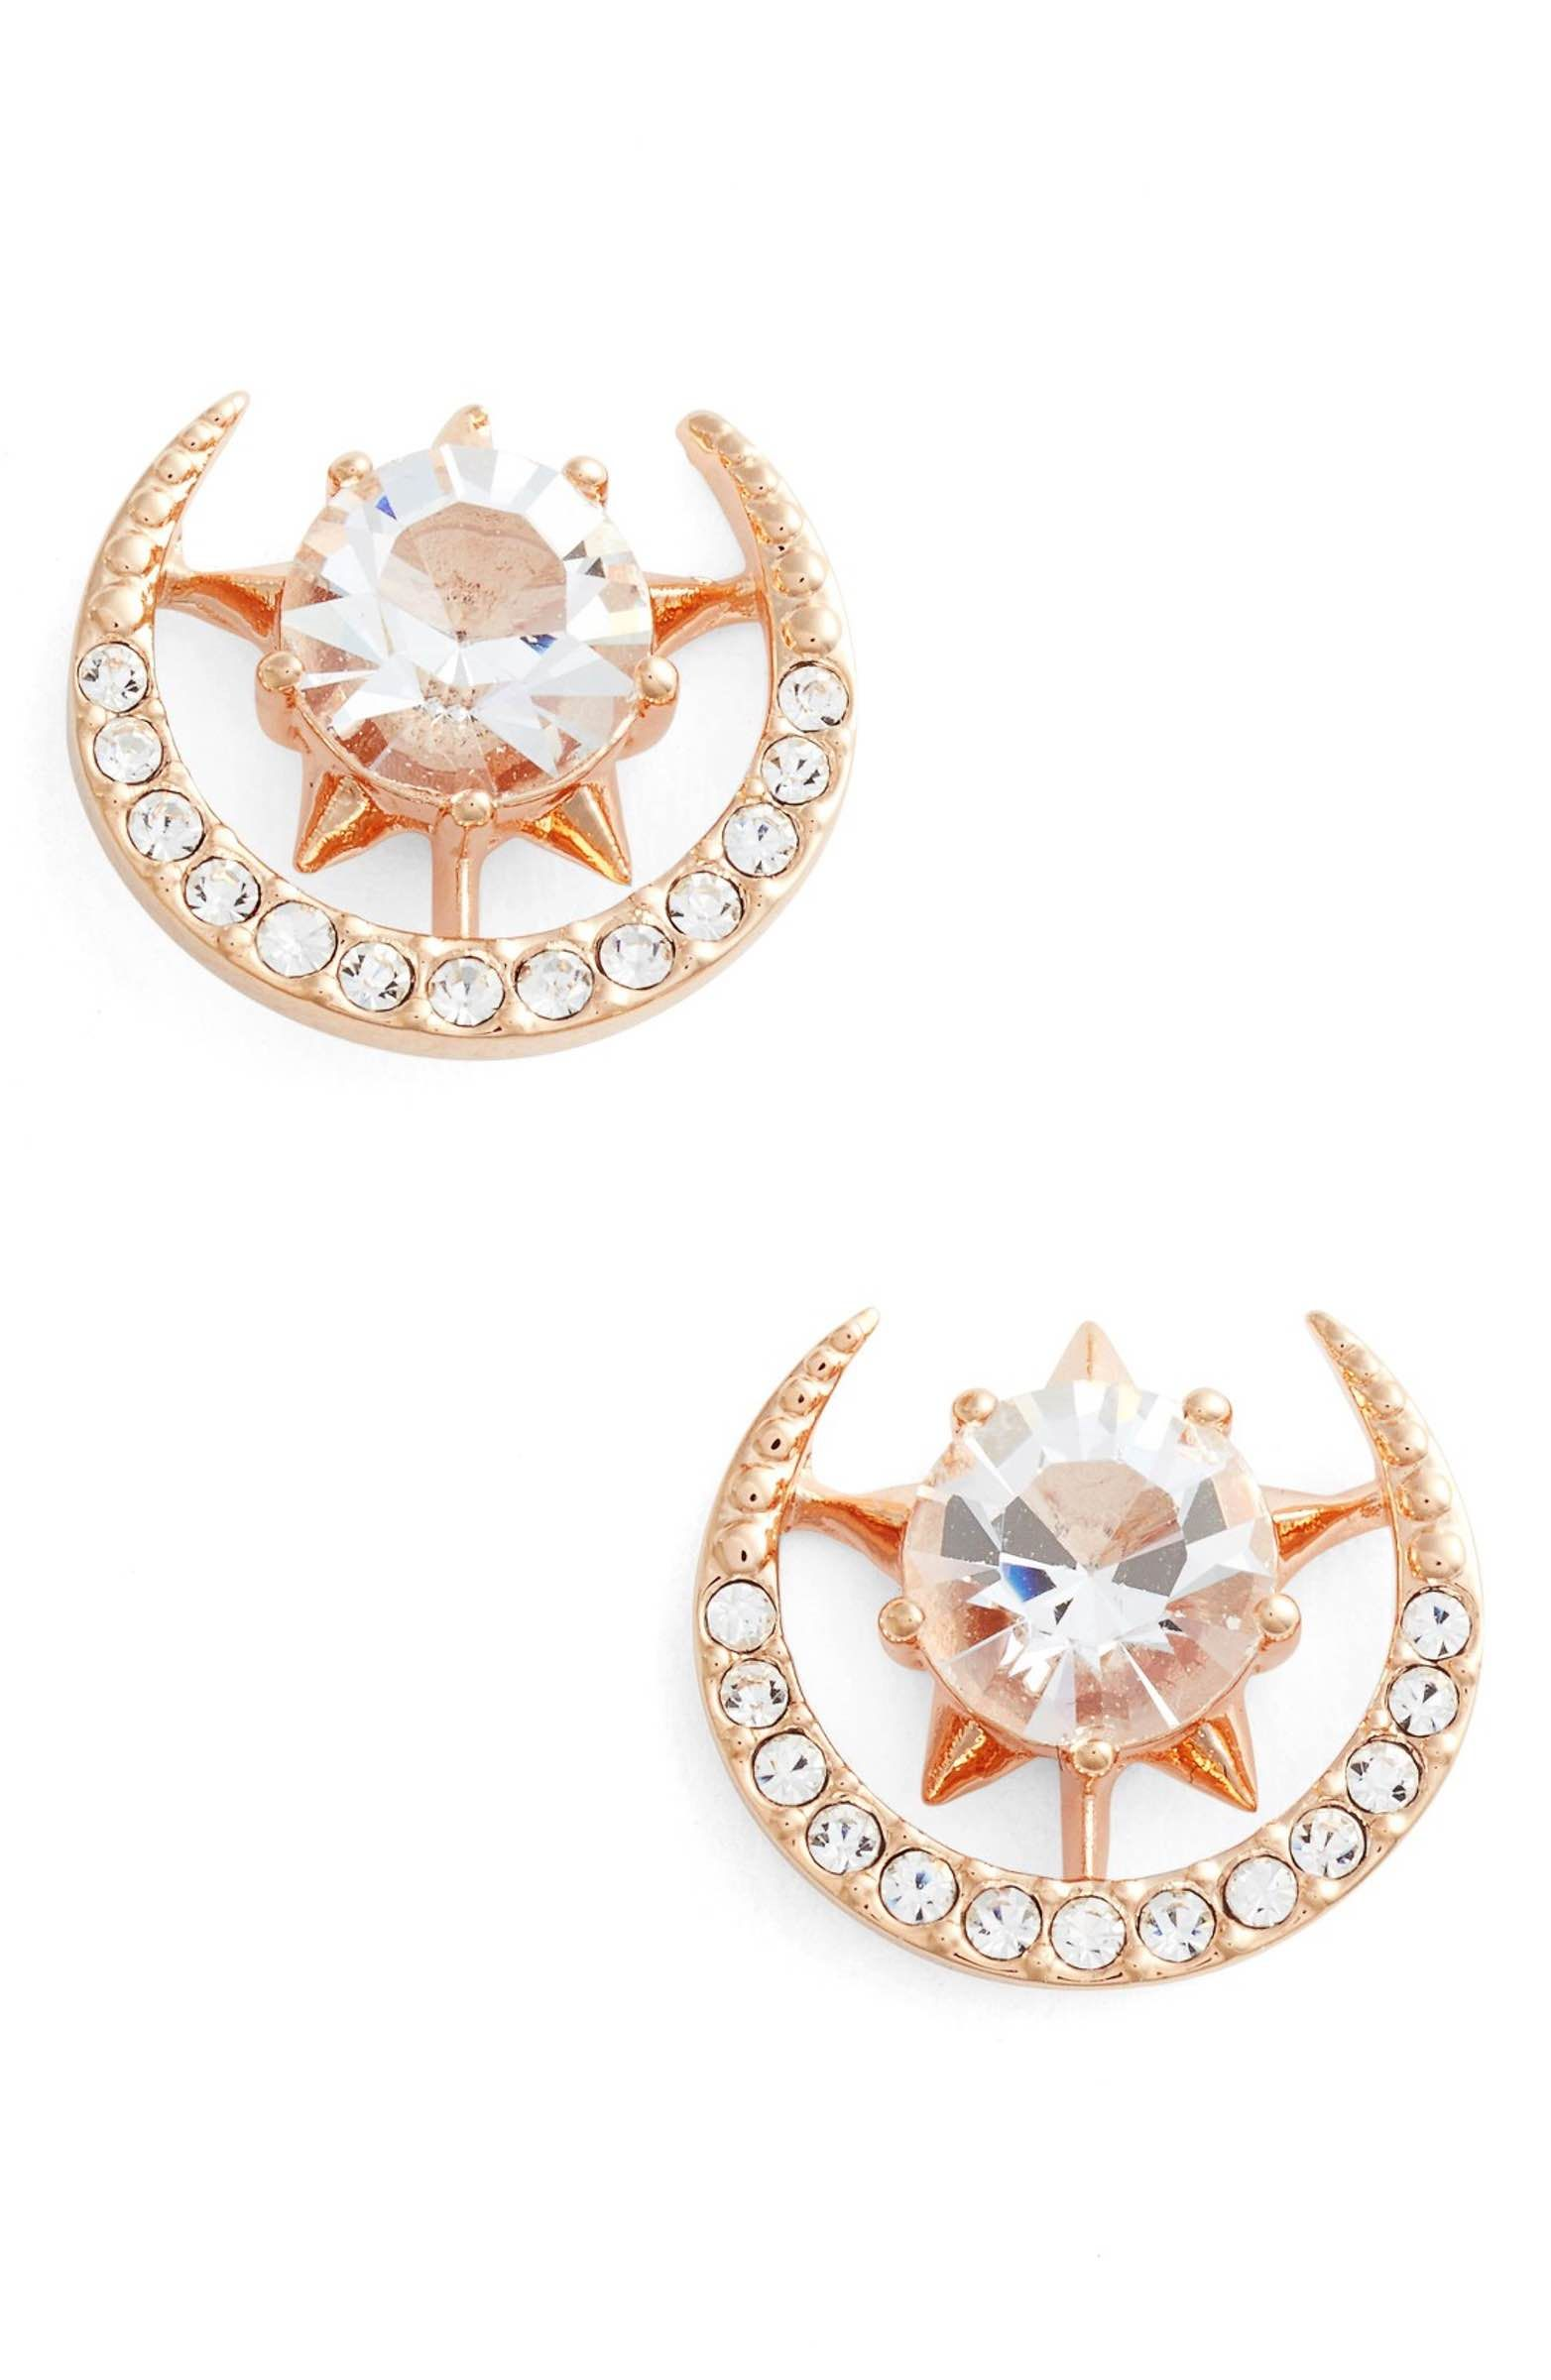 Main Image Nadri Wishes Moon Stud Earrings